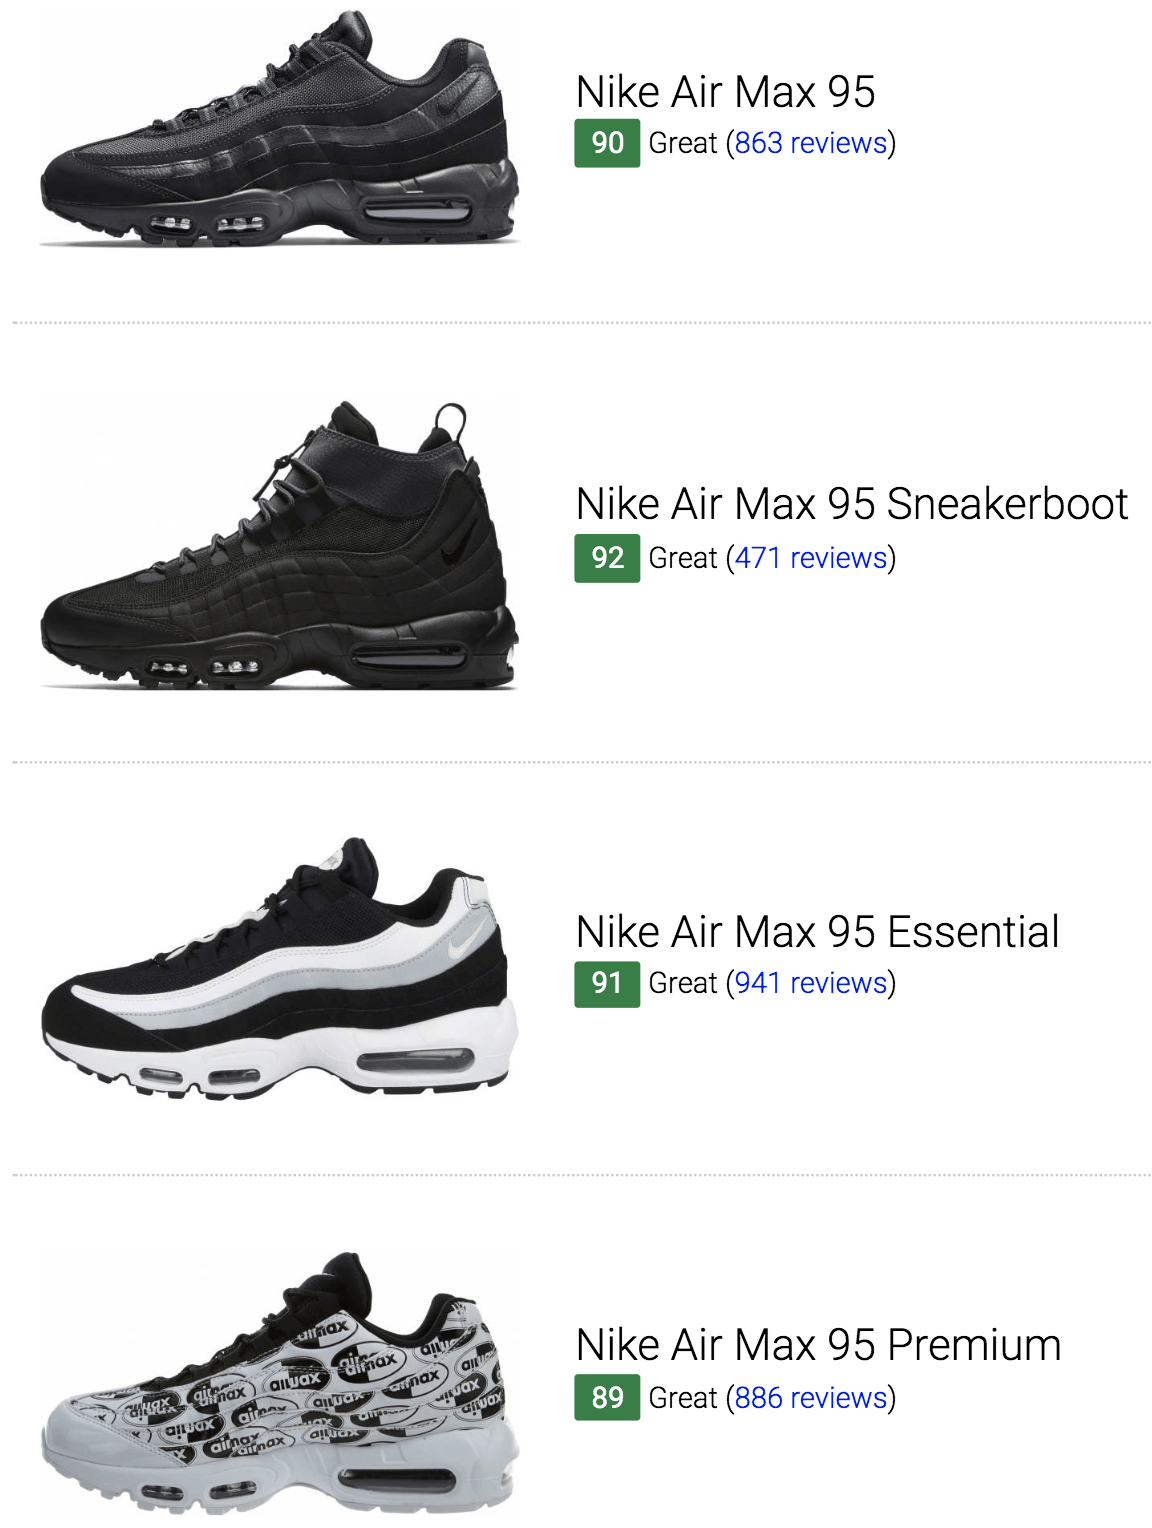 10 Best Nike Air Max 95 Sneakers (October 2019) | RunRepeat